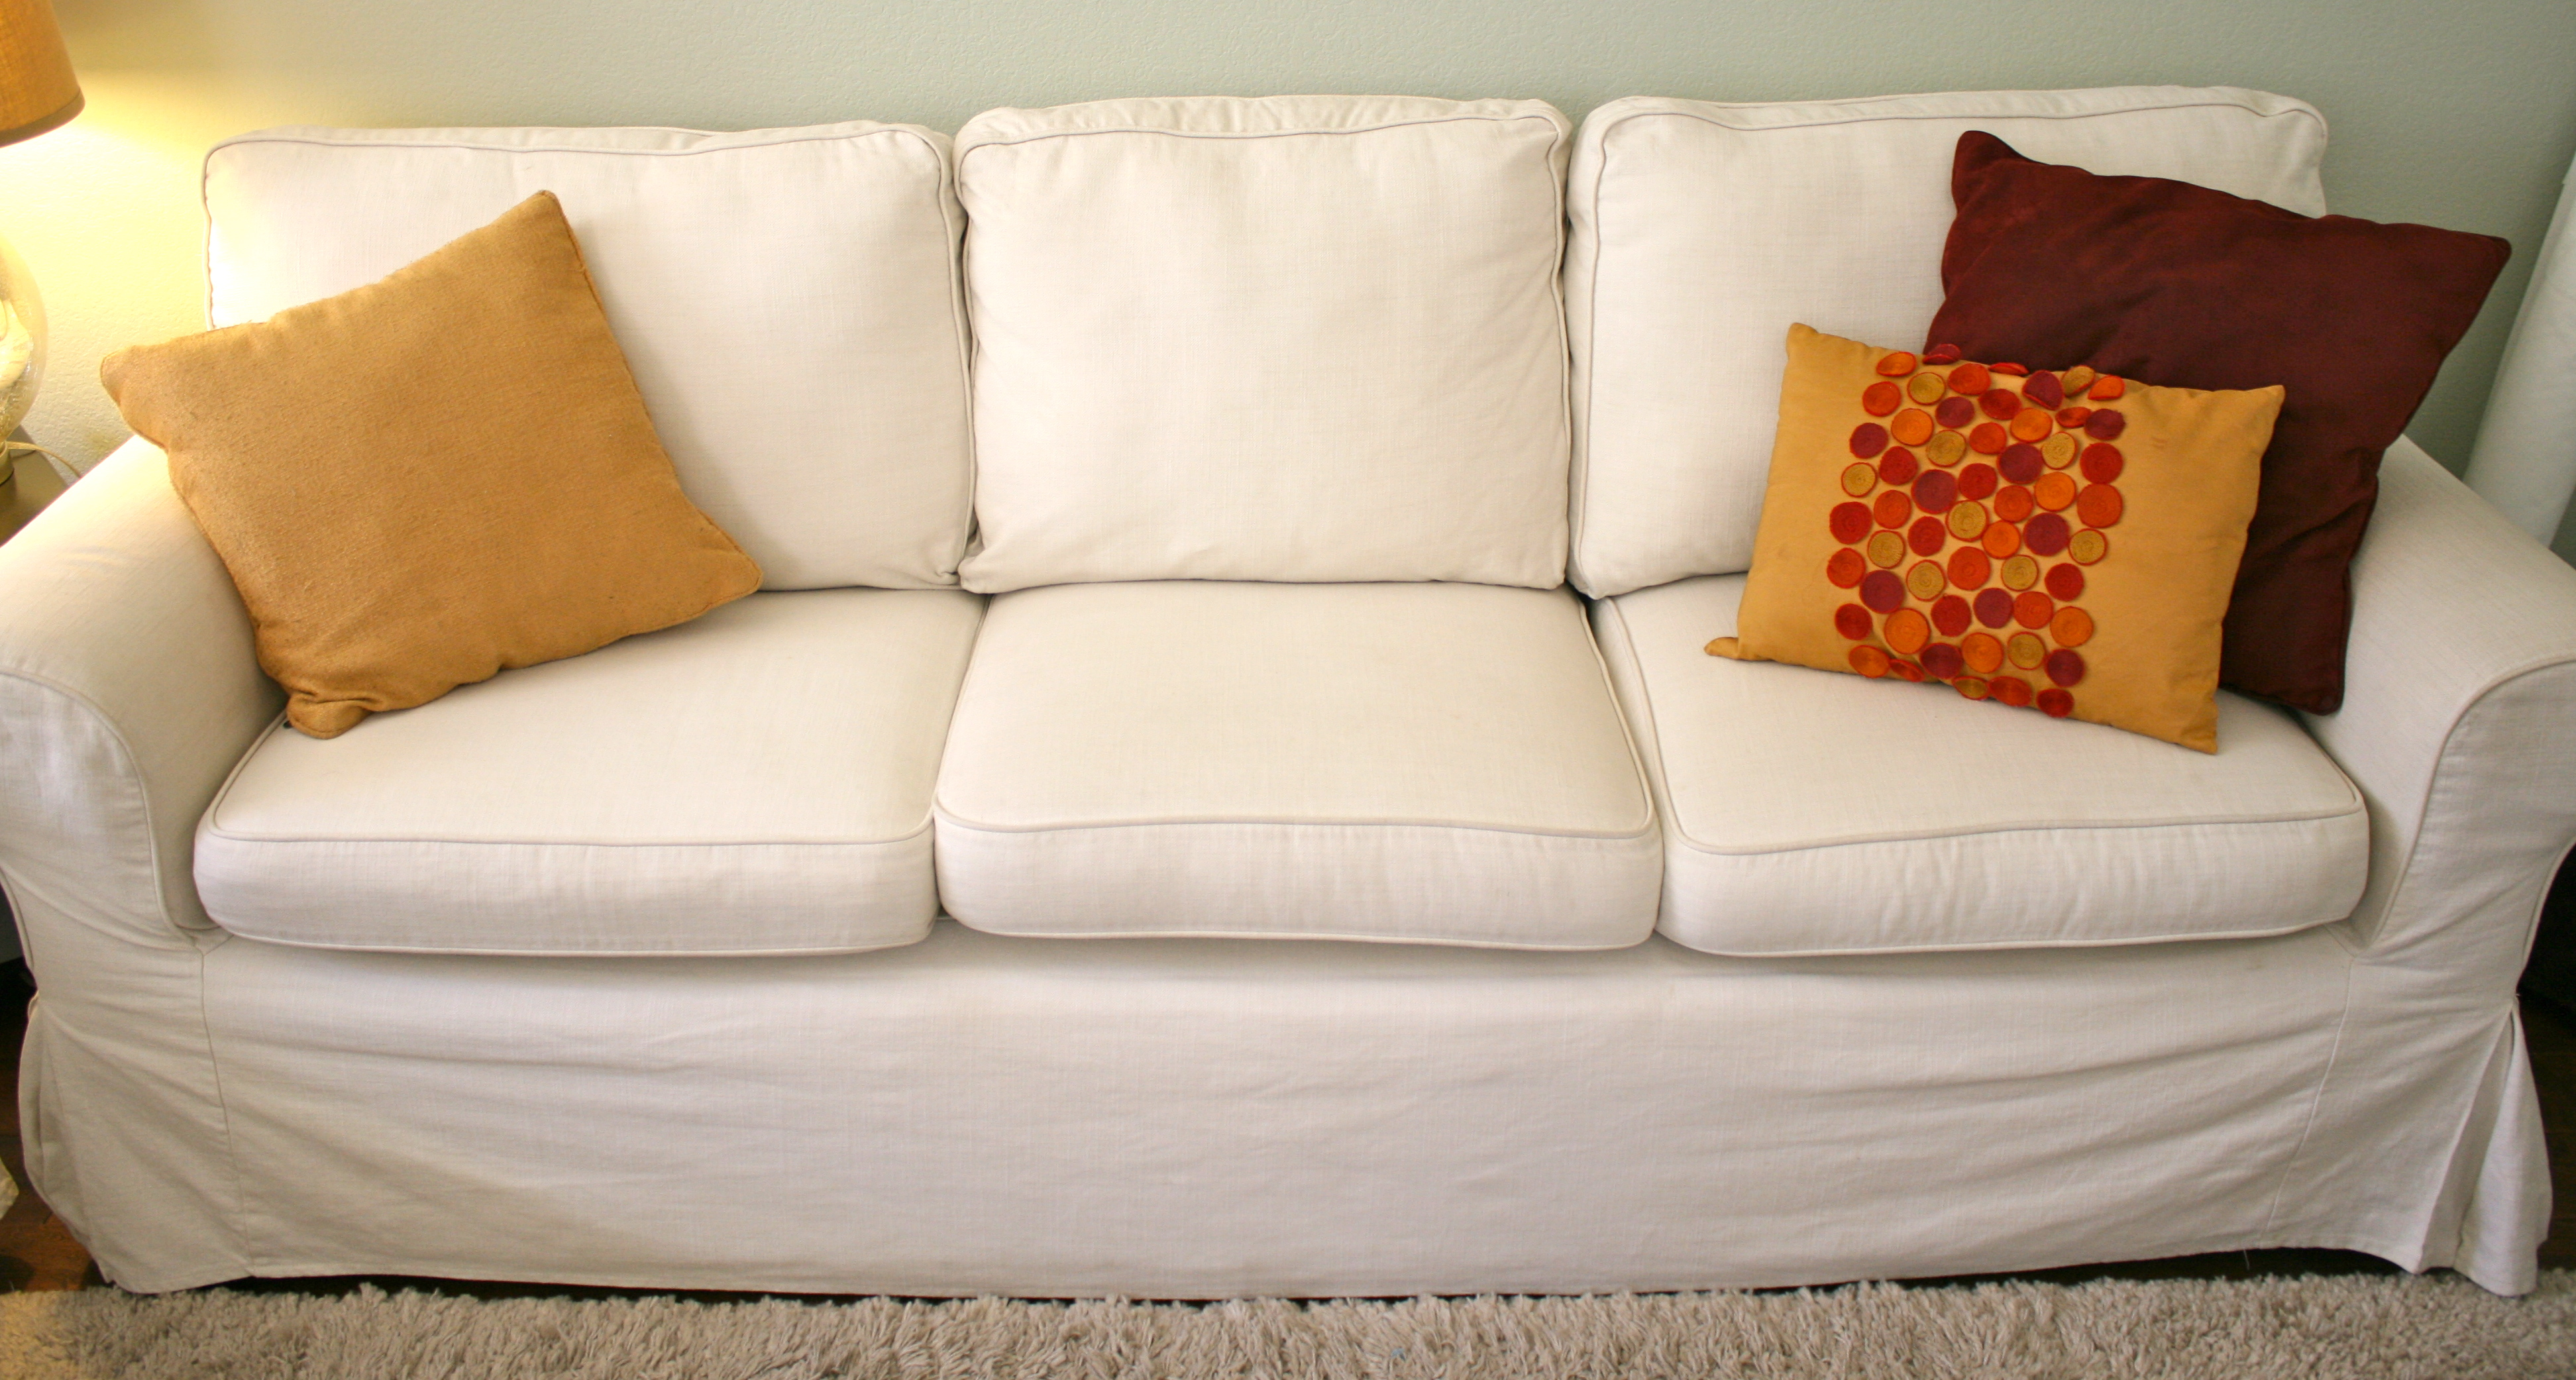 Here S How To Make Your Sagging Couch Cushions Look Plump Again 1